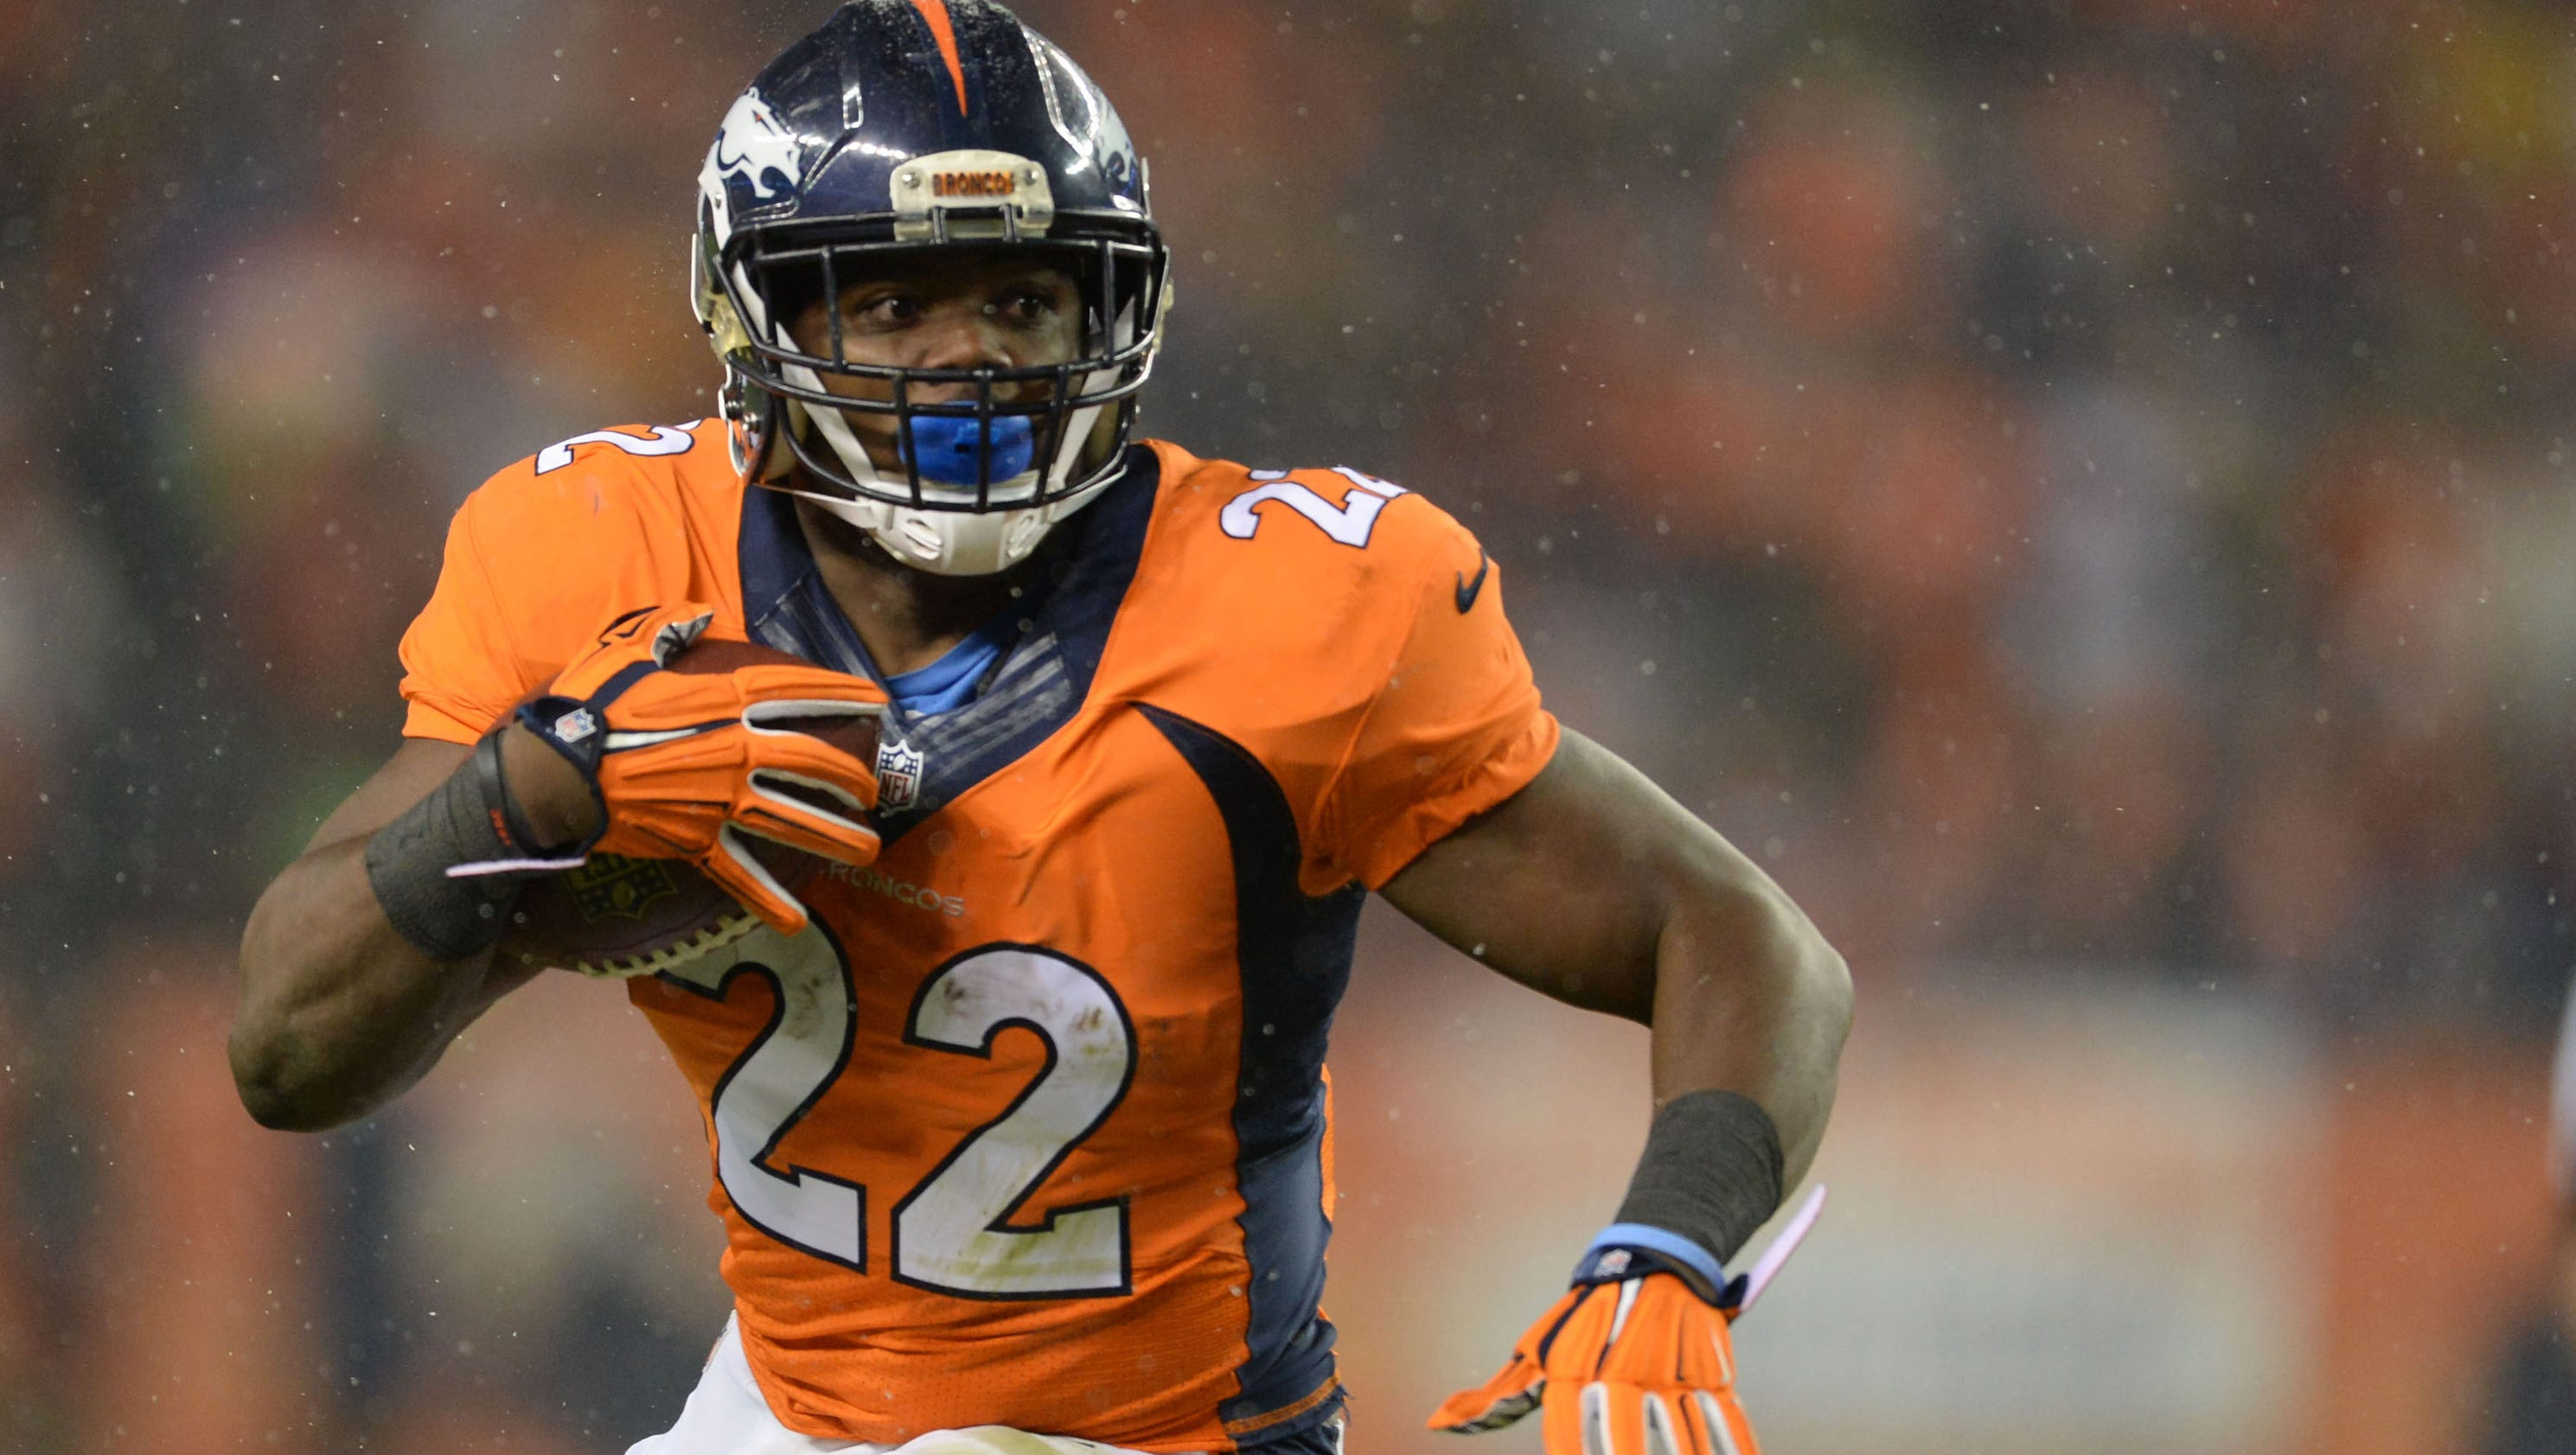 Broncos keep RB C.J. Anderson after matching Dolphins offer sheet